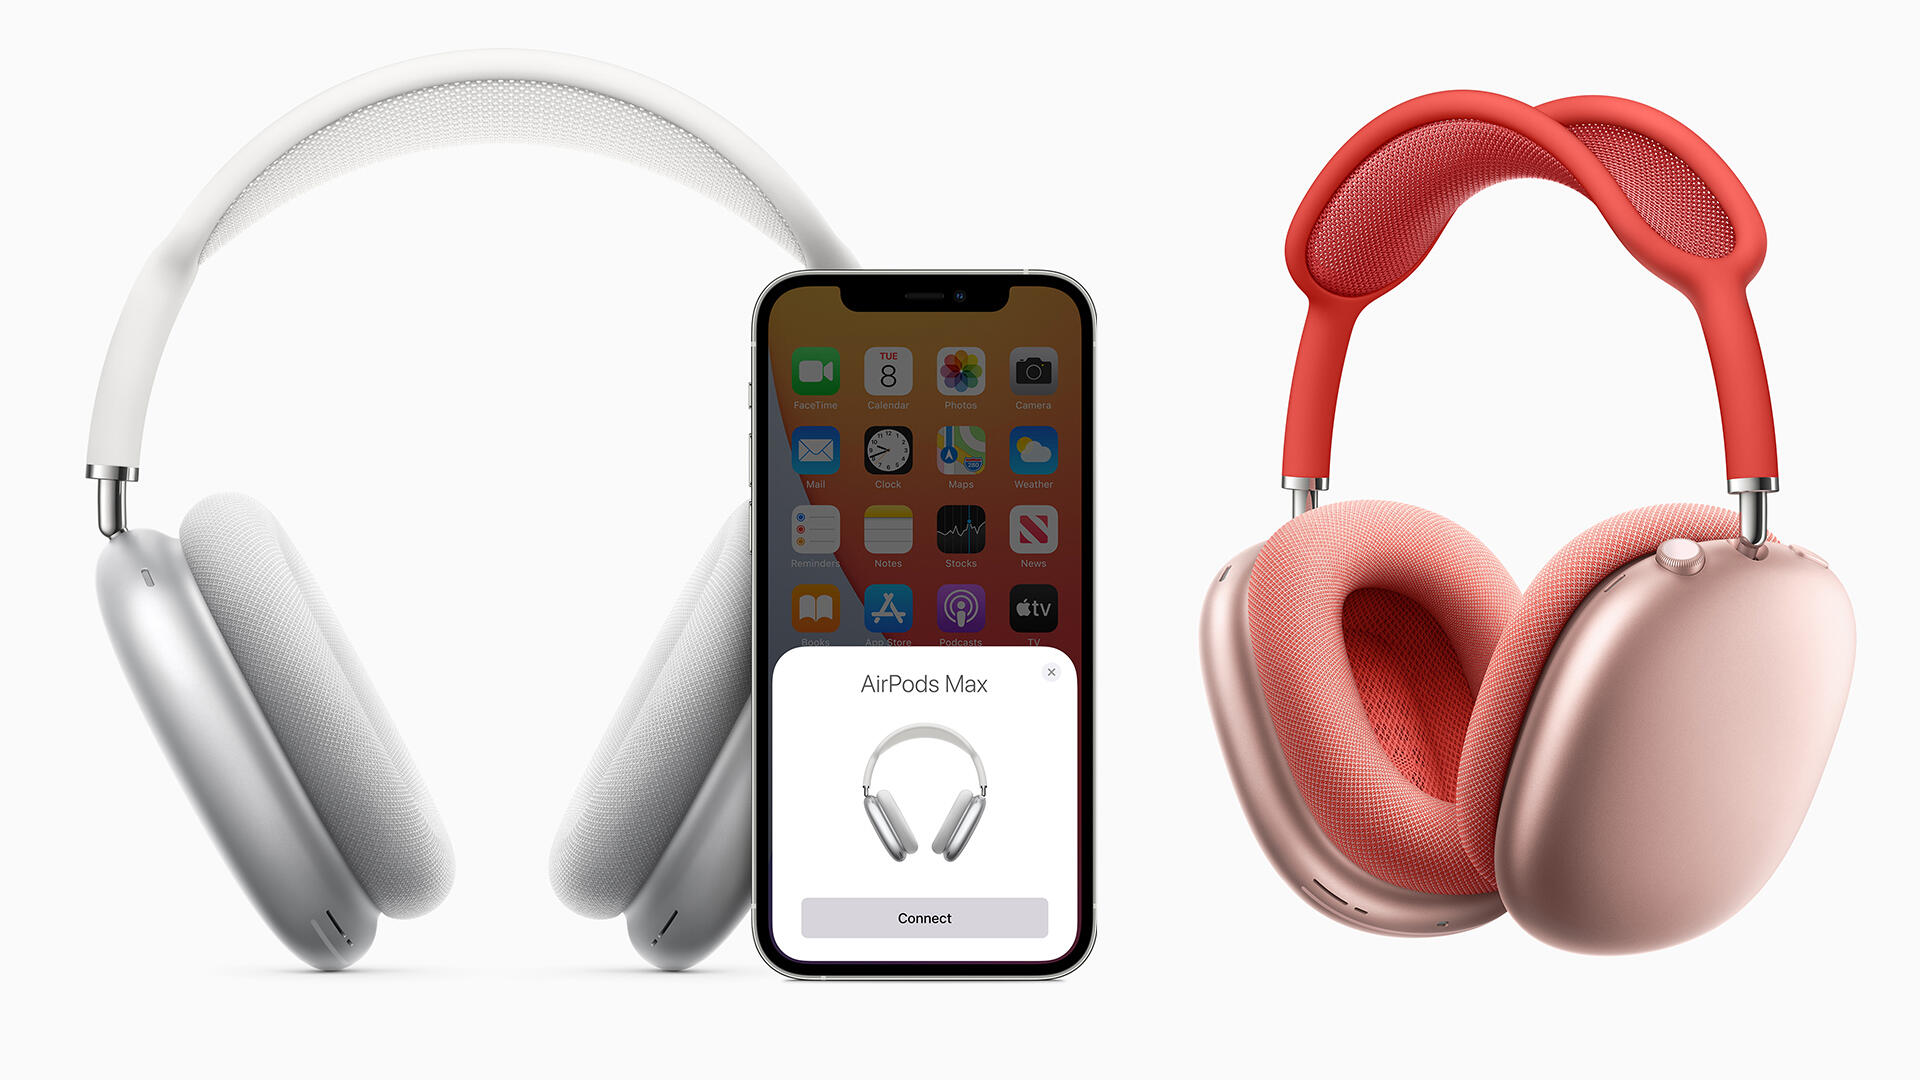 Video: Apple AirPods Max headphones go big on sound and features